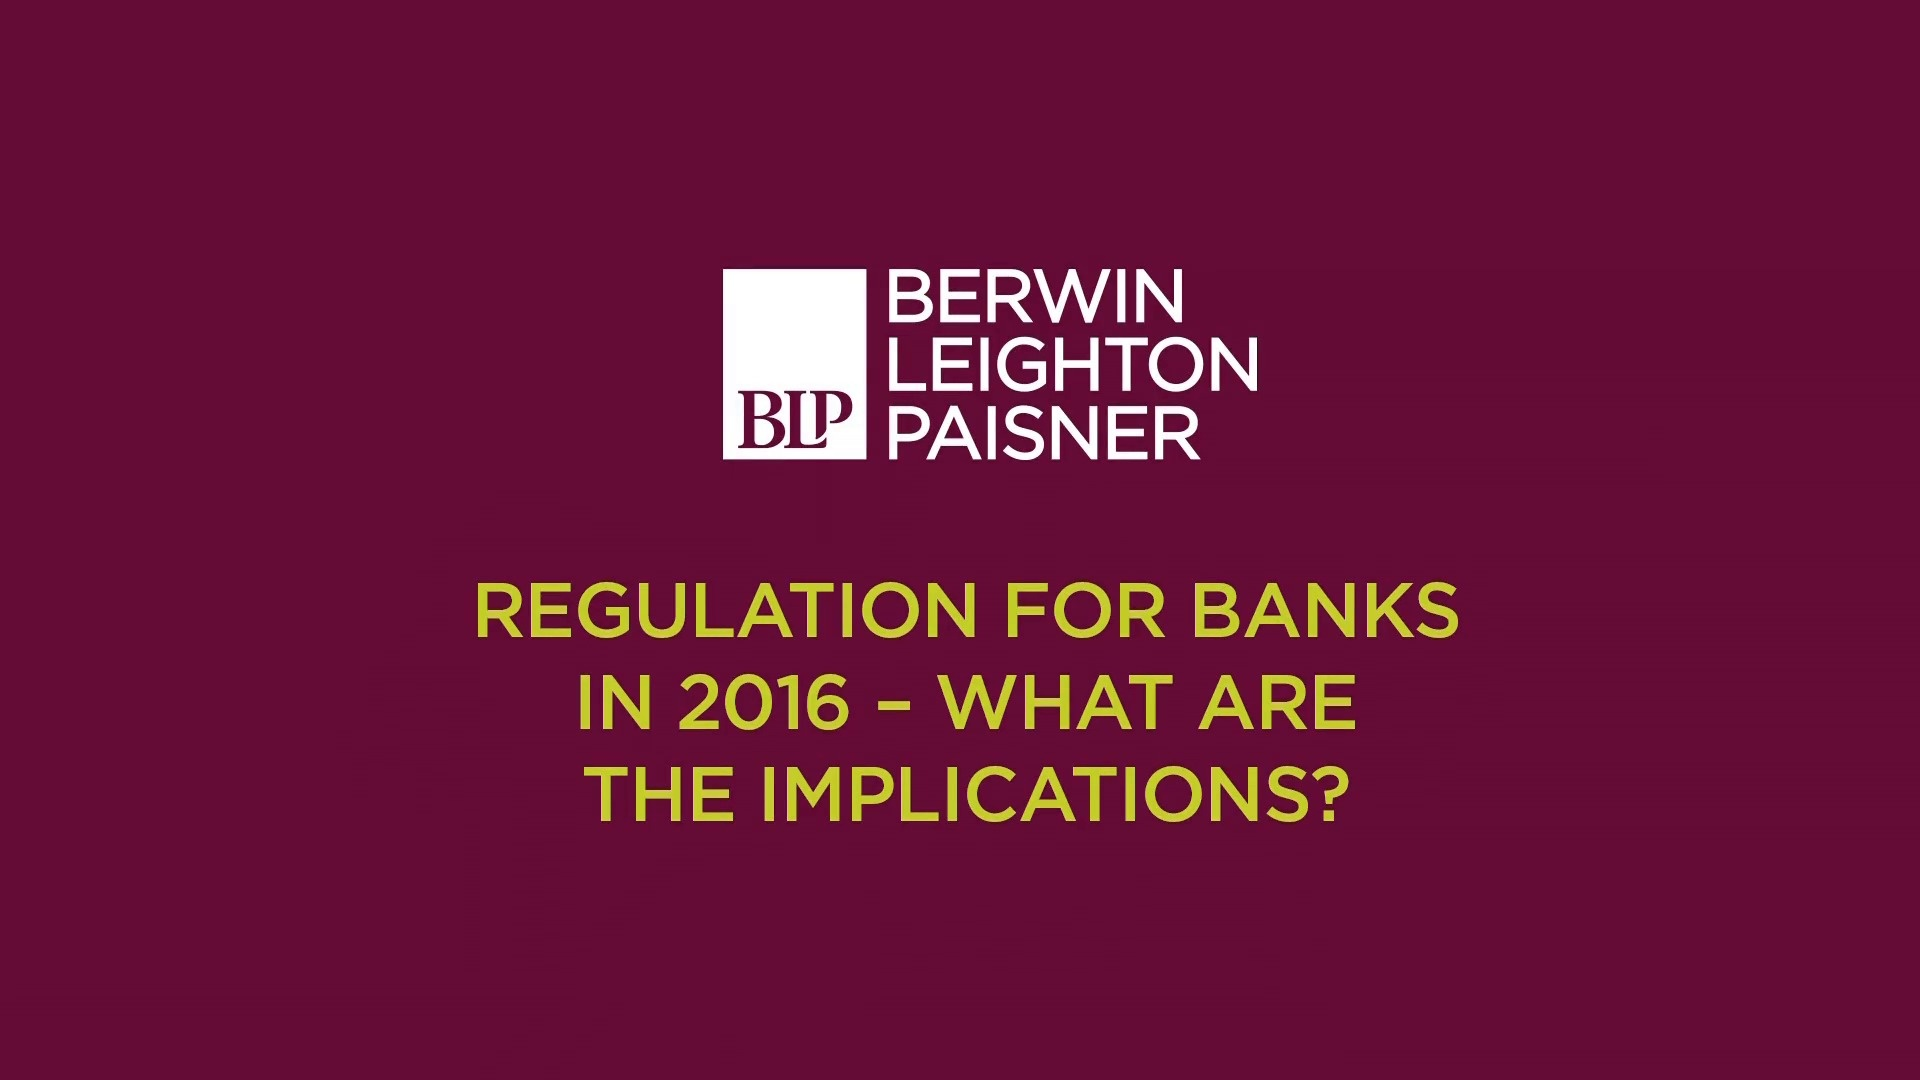 Still image from 'Regulation for banks in 2016 – what are the implications?' video